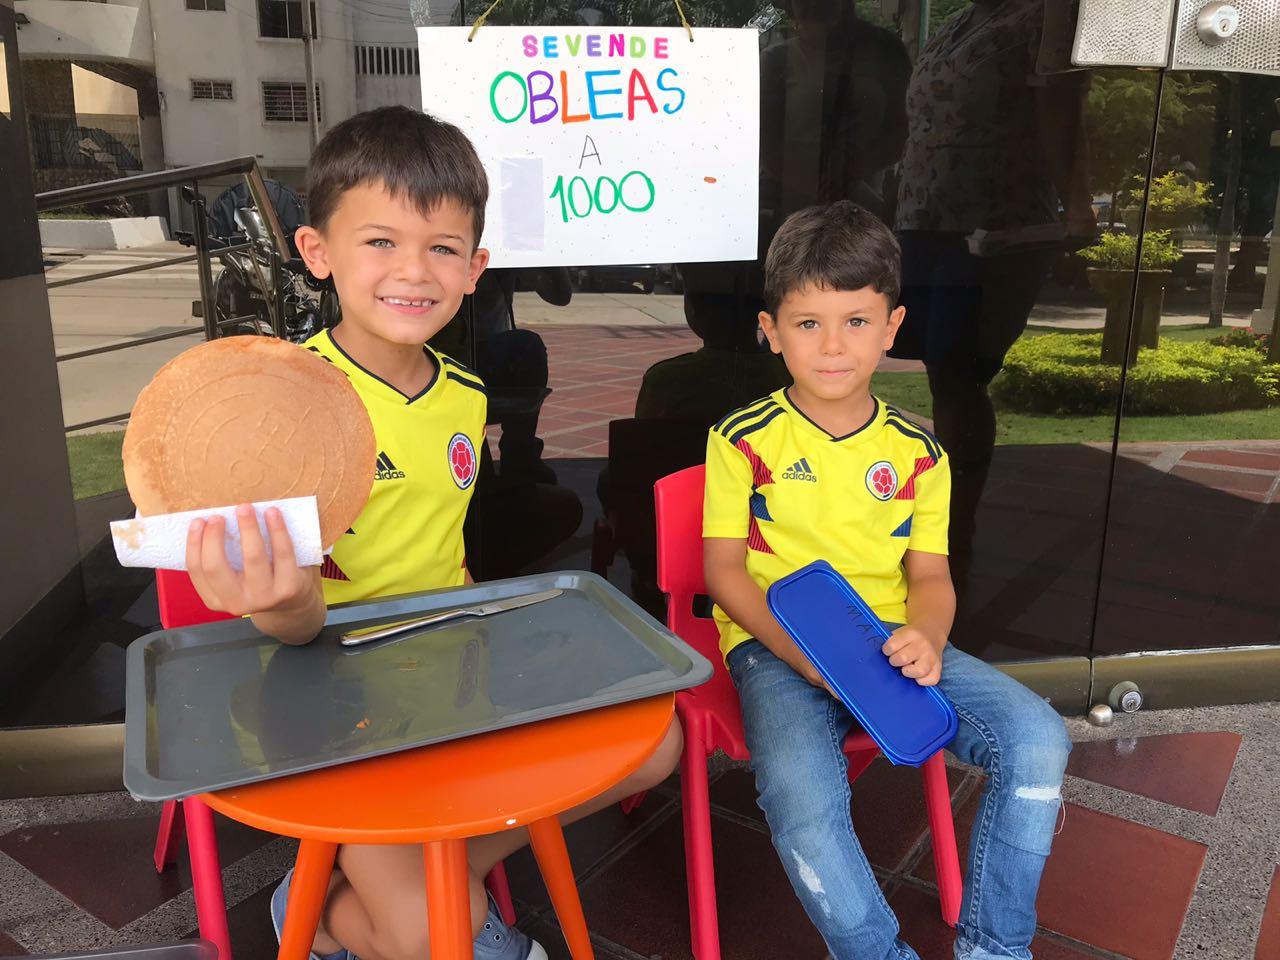 Martin & Manolo selling obleas for $1000 pesos outside of their Grandmas house in Barranquilla, Colombia.